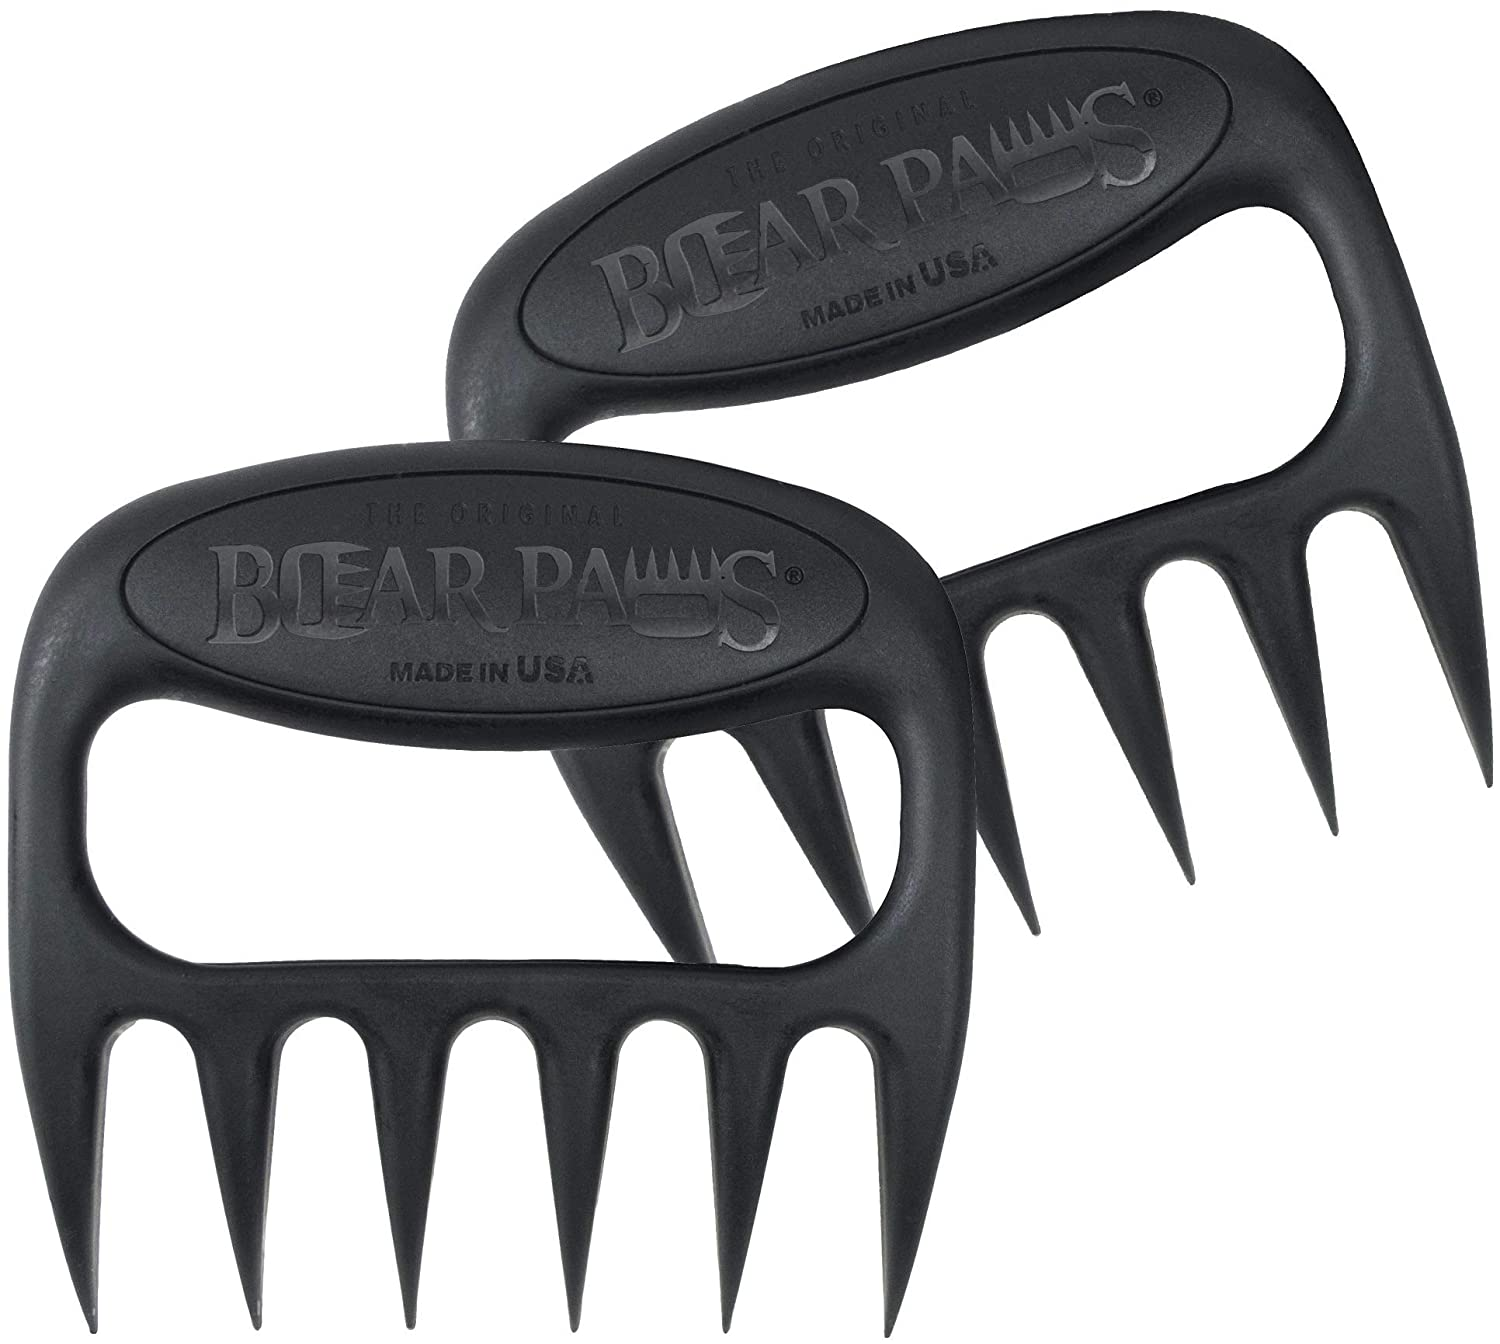 The Original Bear Paws Shredder Claws - Easily Lift, Handle, Shred, and Cut Meats - Essential for BBQ Pros - Ultra-Sharp Blades and Heat Resistant Nylon 71YiY3-rv-L